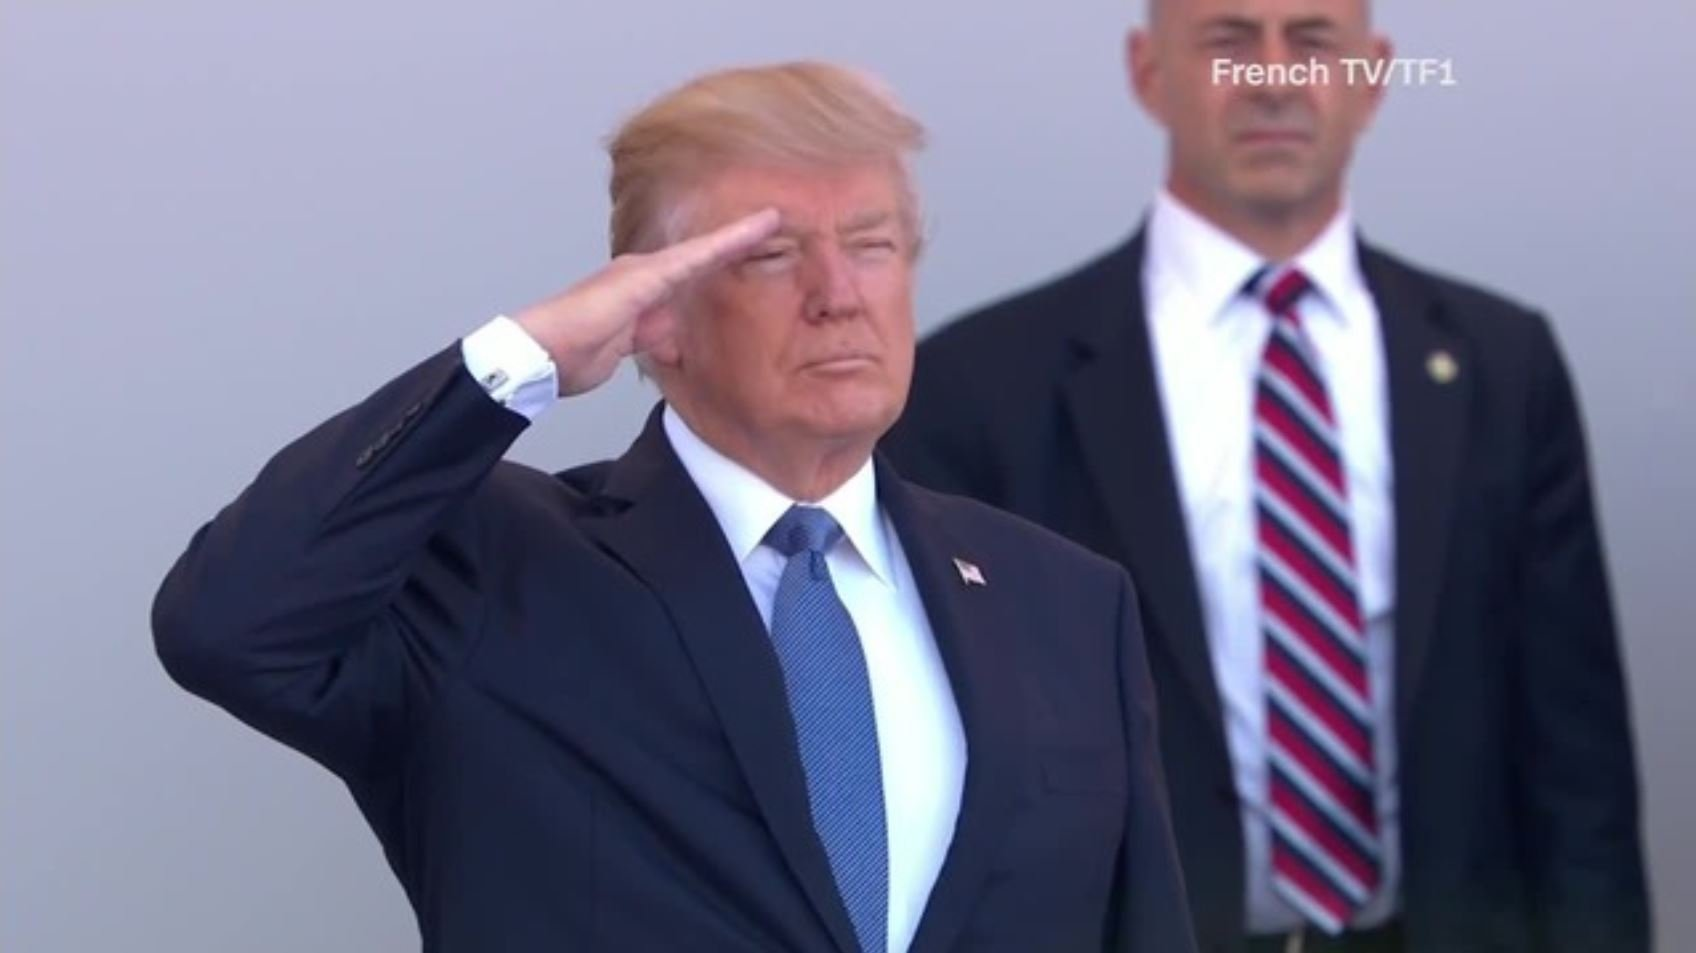 The Pentagon has issued a memo outlining guidance for the military parade President Donald Trump asked for. (Source: FRENCHTV/TF1/CNN)